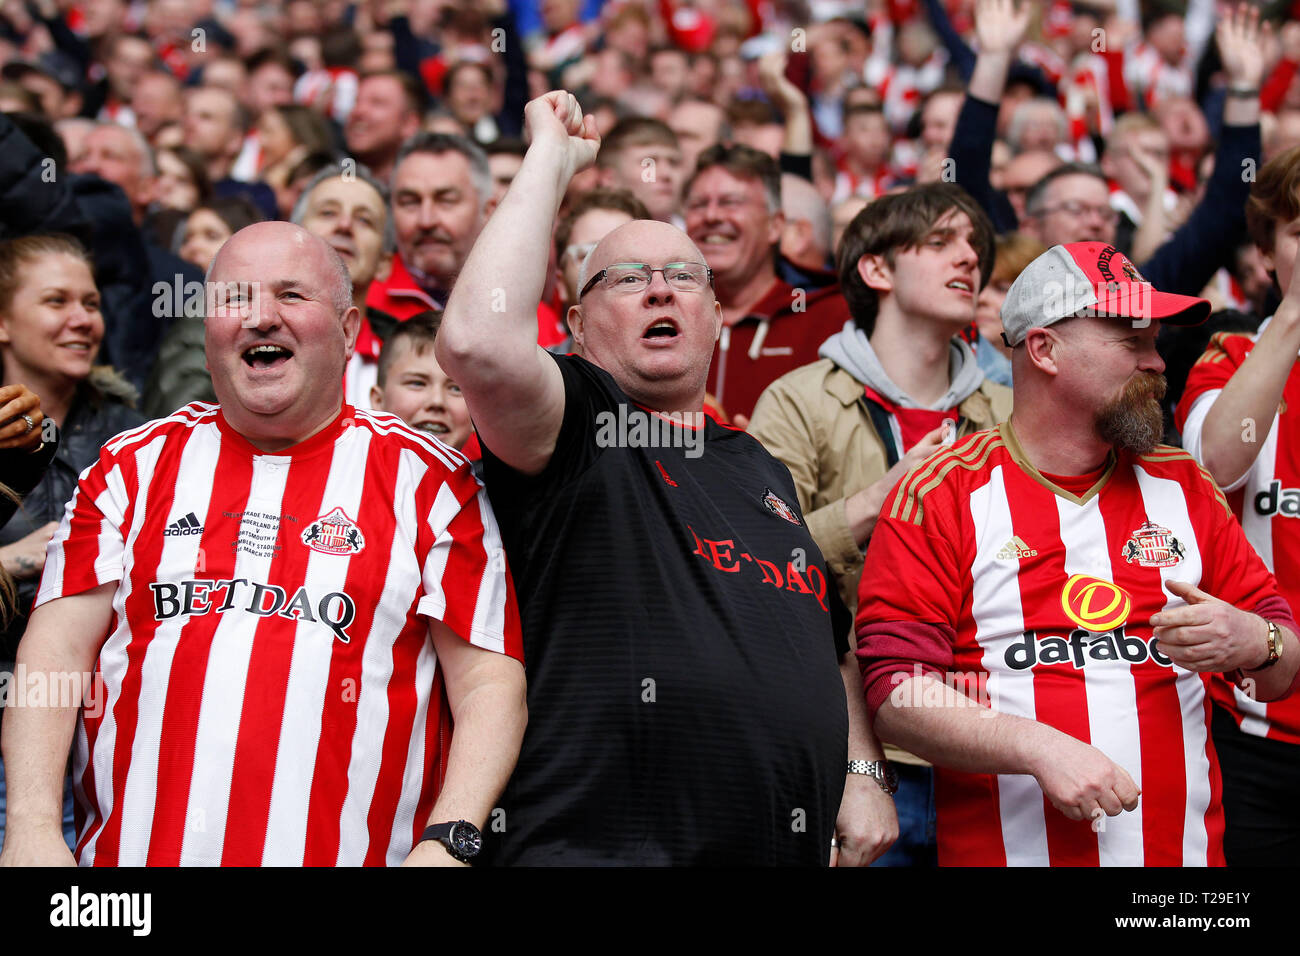 Sunderland AFC fans celebrate during the Checkatrade Trophy Final match between Portsmouth and Sunderland at Wembley Stadium, London, England on 31 March 2019. Photo by Carlton Myrie.  Editorial use only, license required for commercial use. No use in betting, games or a single club/league/player publications. - Stock Image